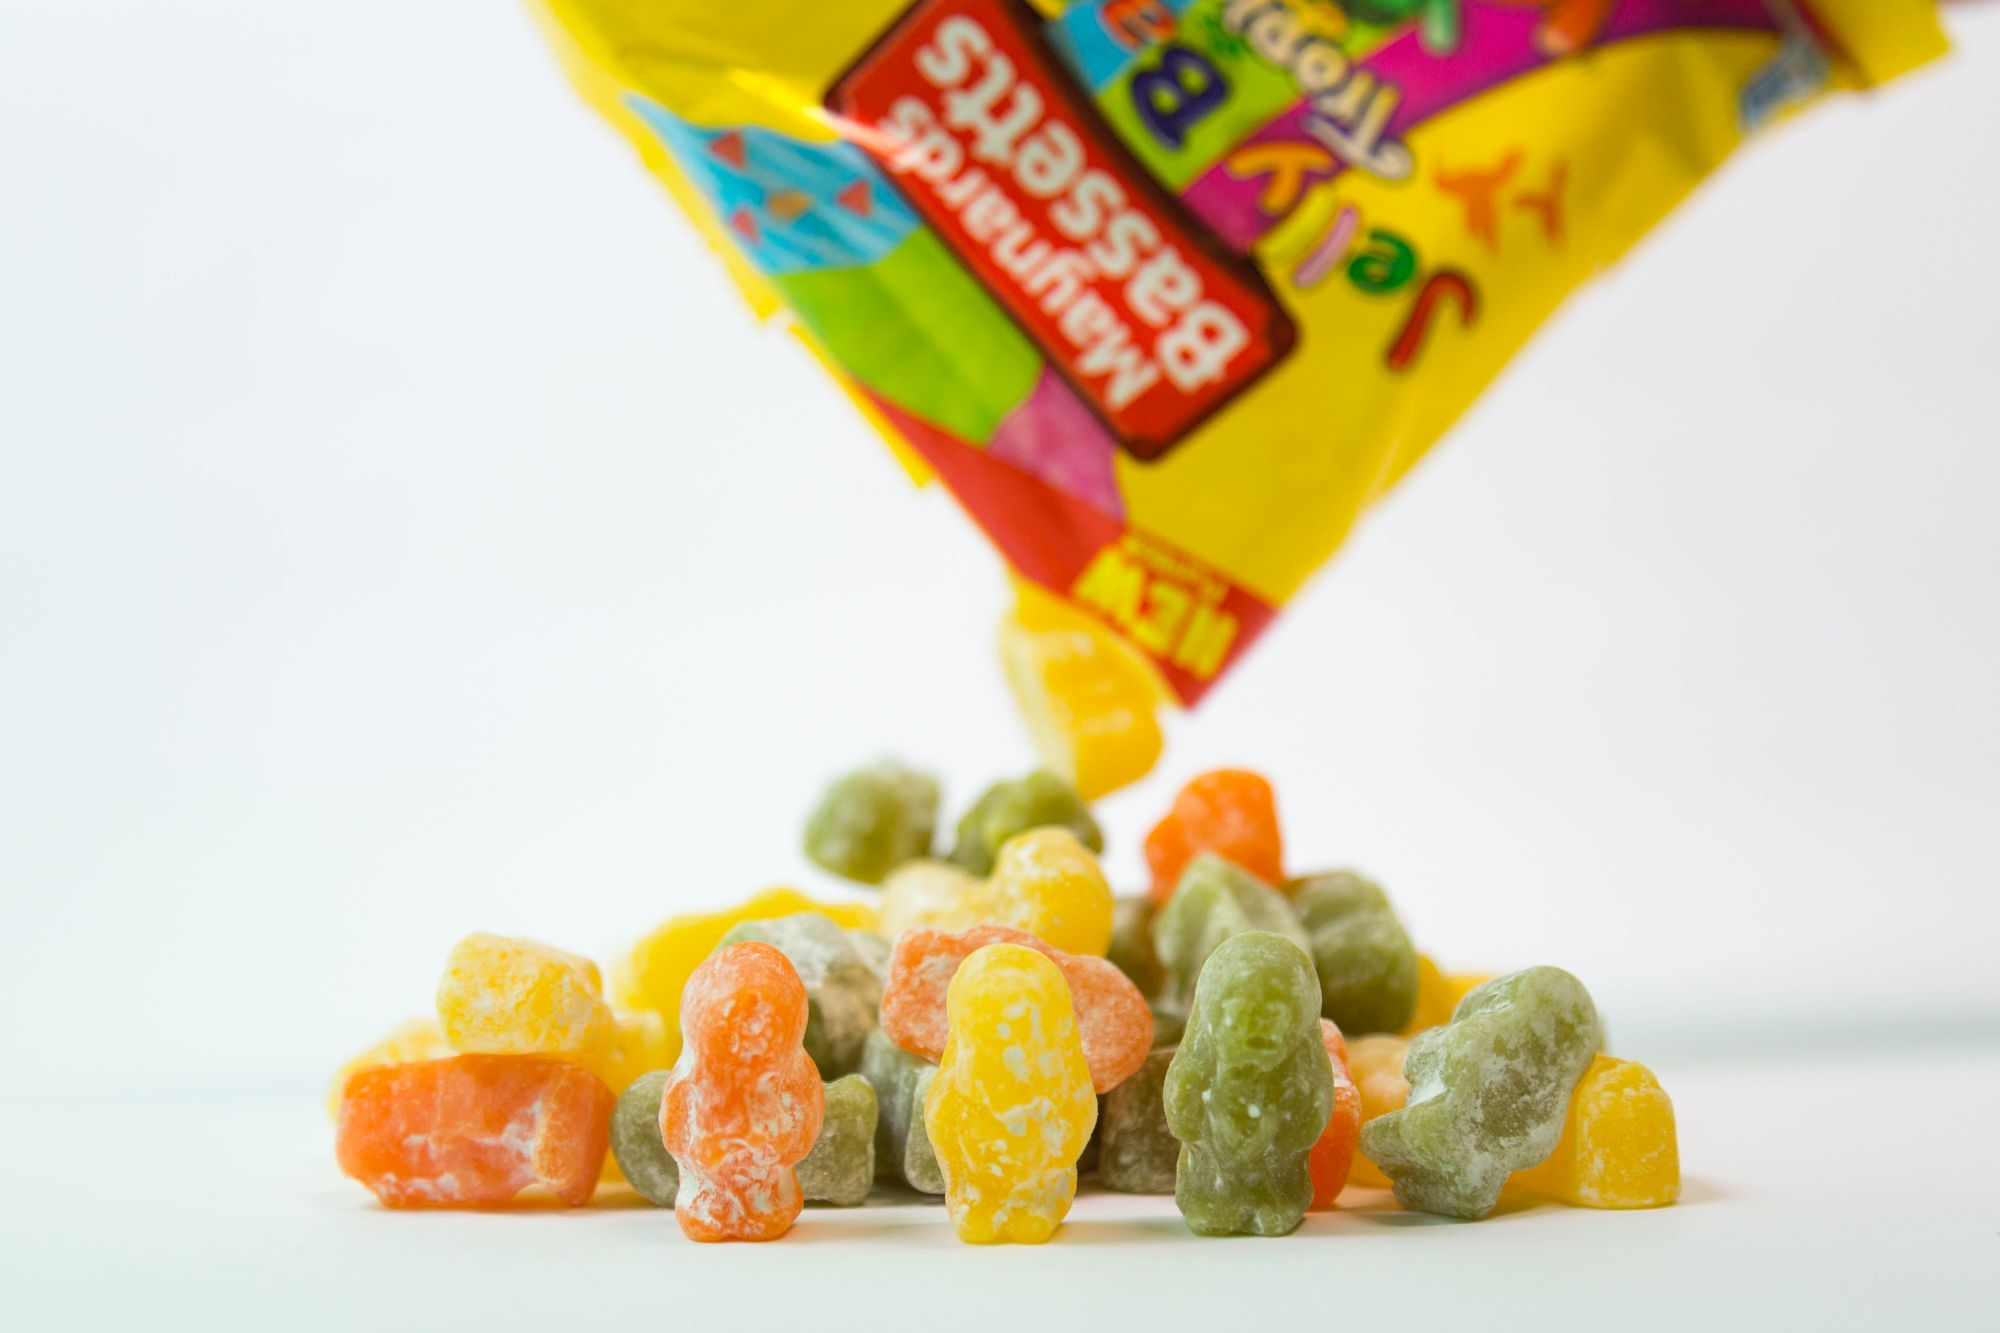 Jelly Babies falling out of a pack (Maynards Bassetts/PA)